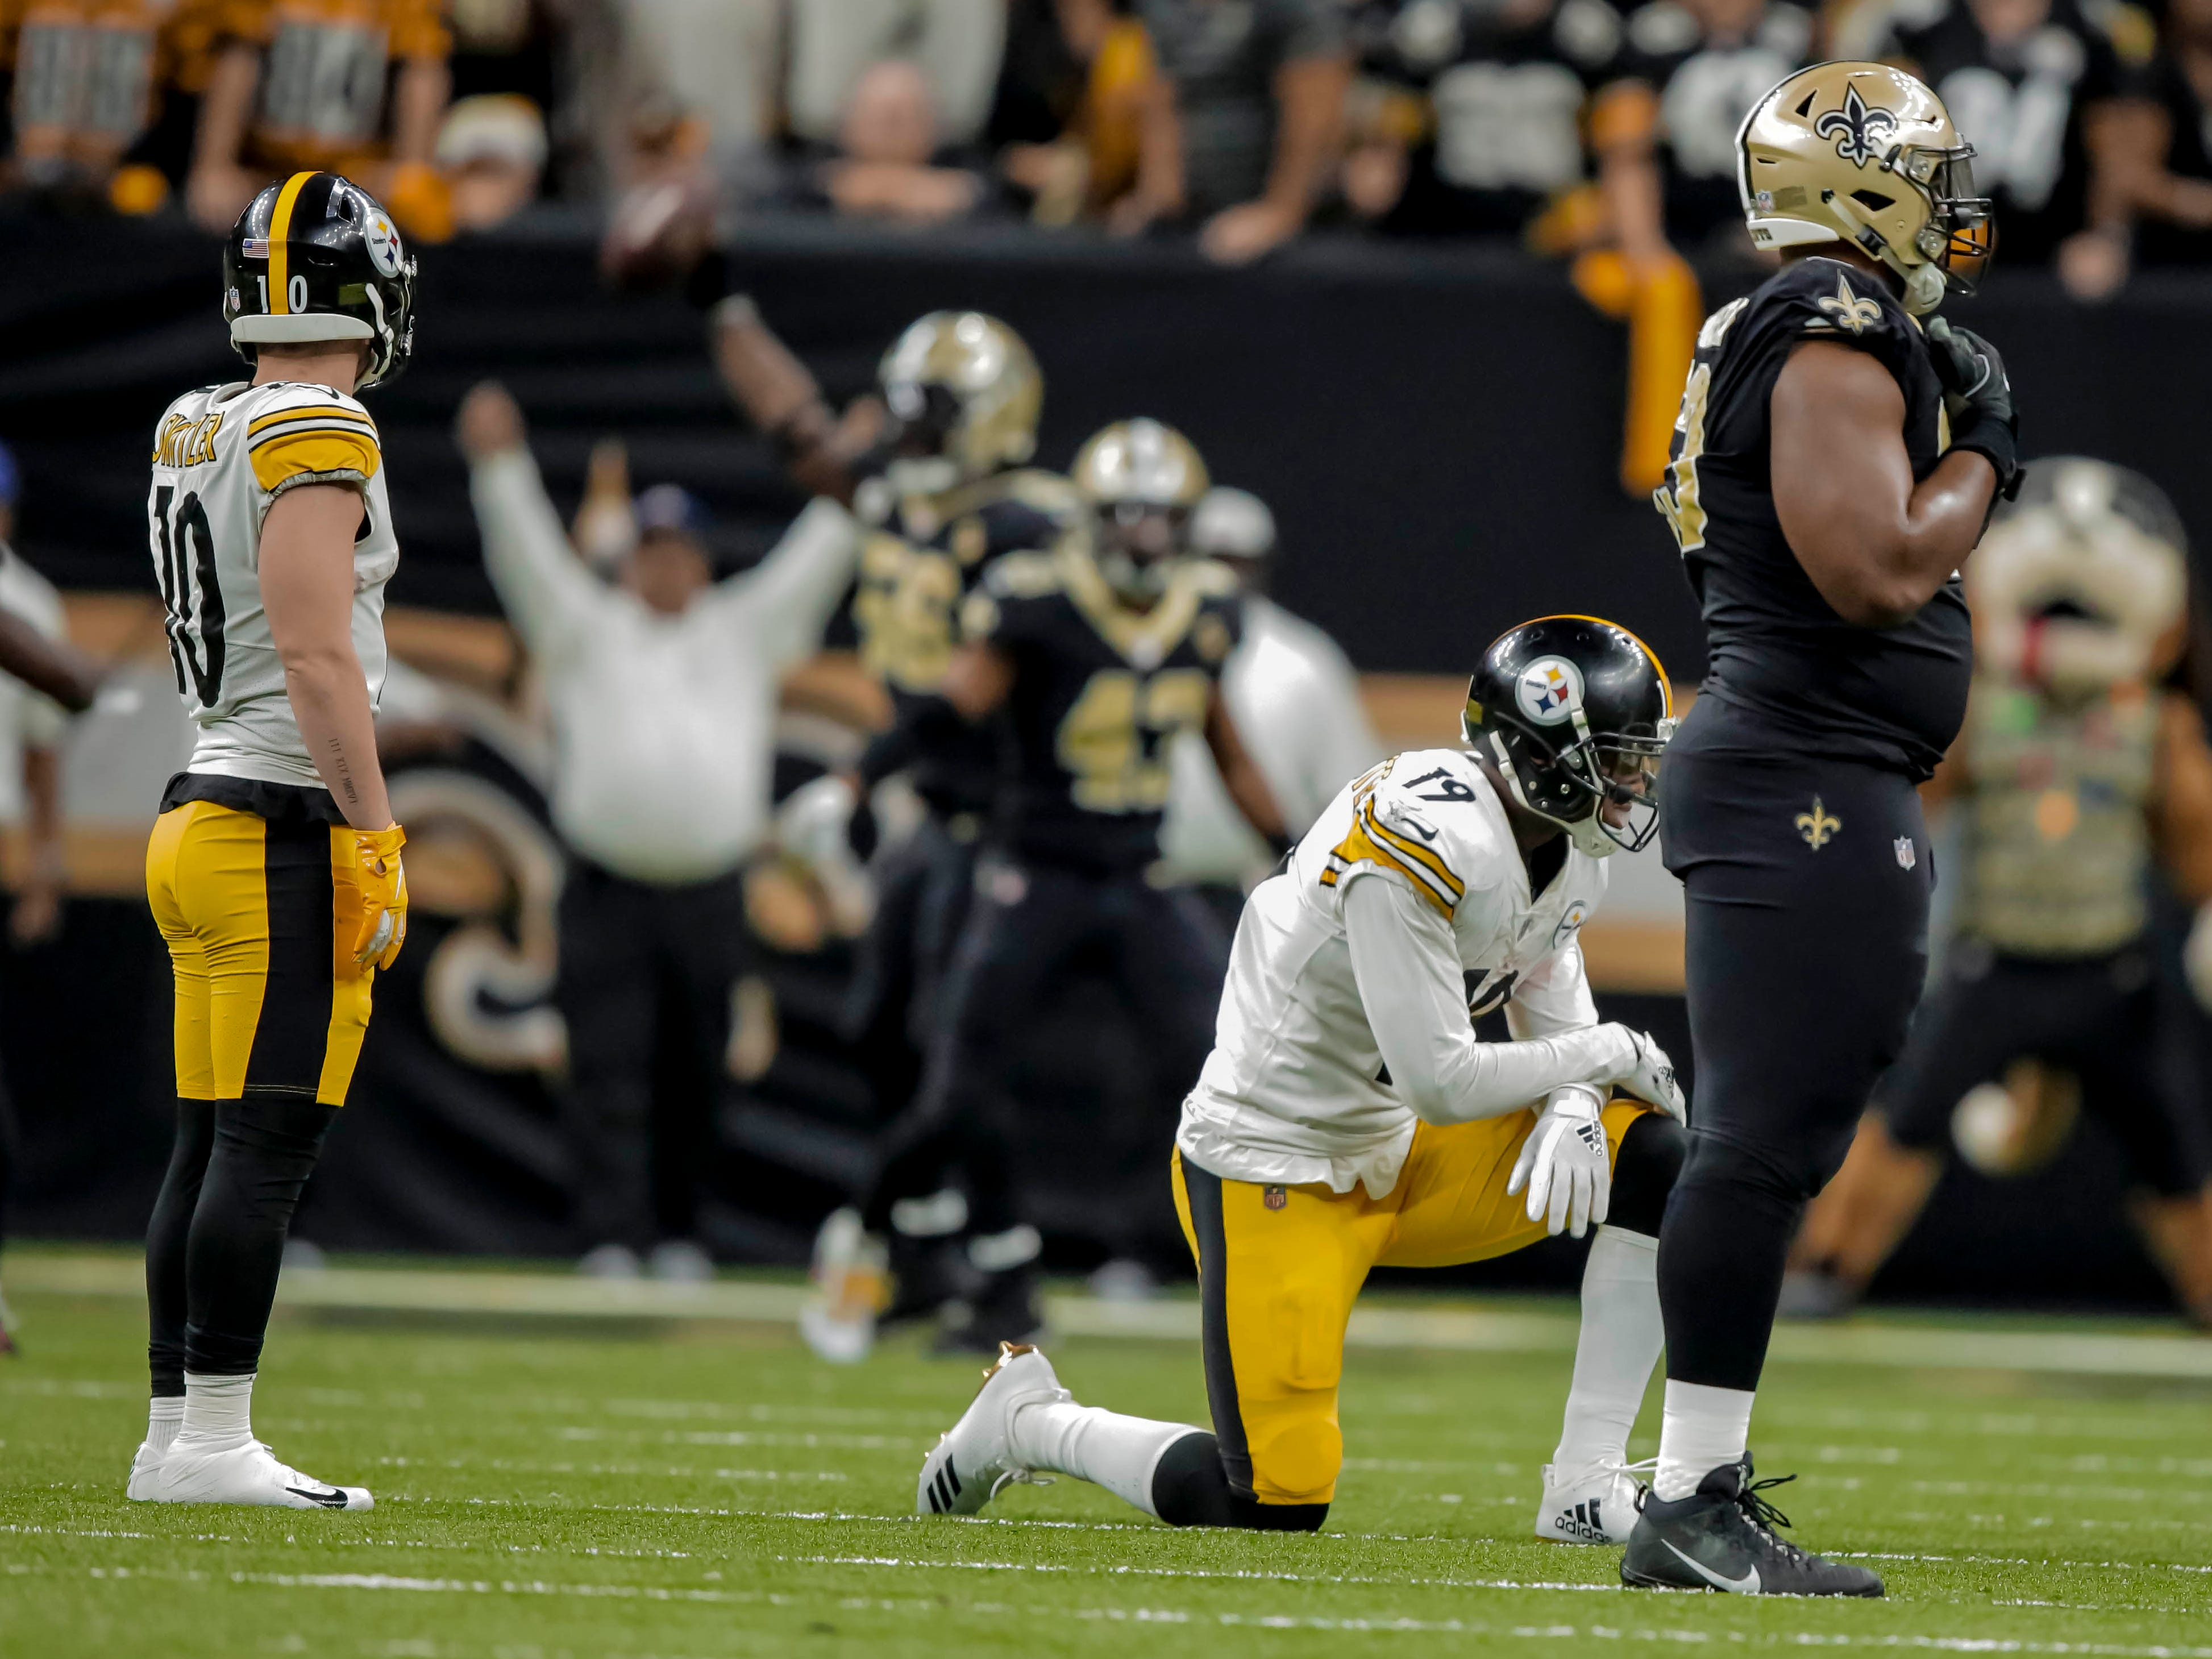 Week 16: Pittsburgh Steelers wide receiver JuJu Smith-Schuster (19) reacts after fumbling late in a 31-28 loss to the New Orleans Saints at the Mercedes-Benz Superdome.